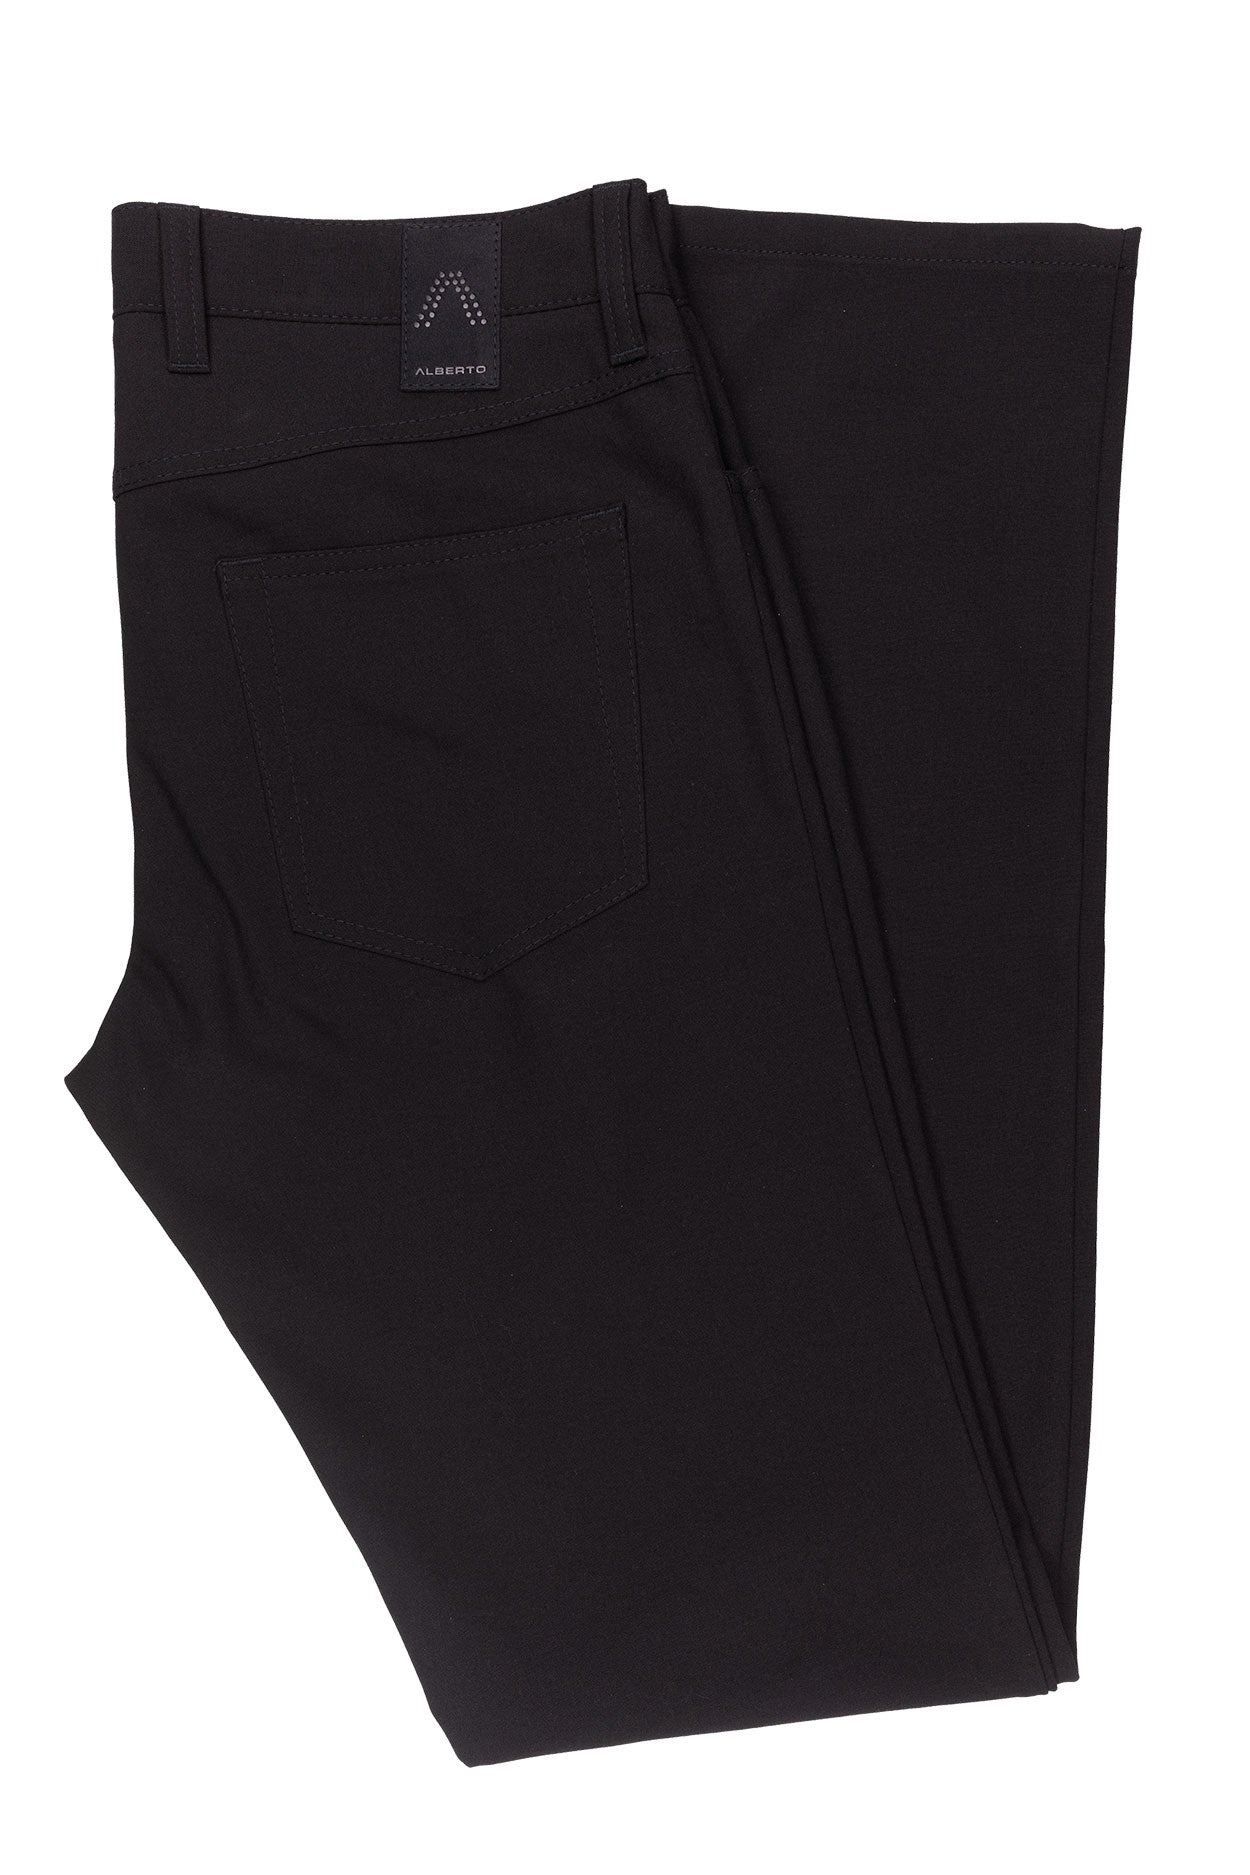 Pipe Black Ceramica Dress Pant